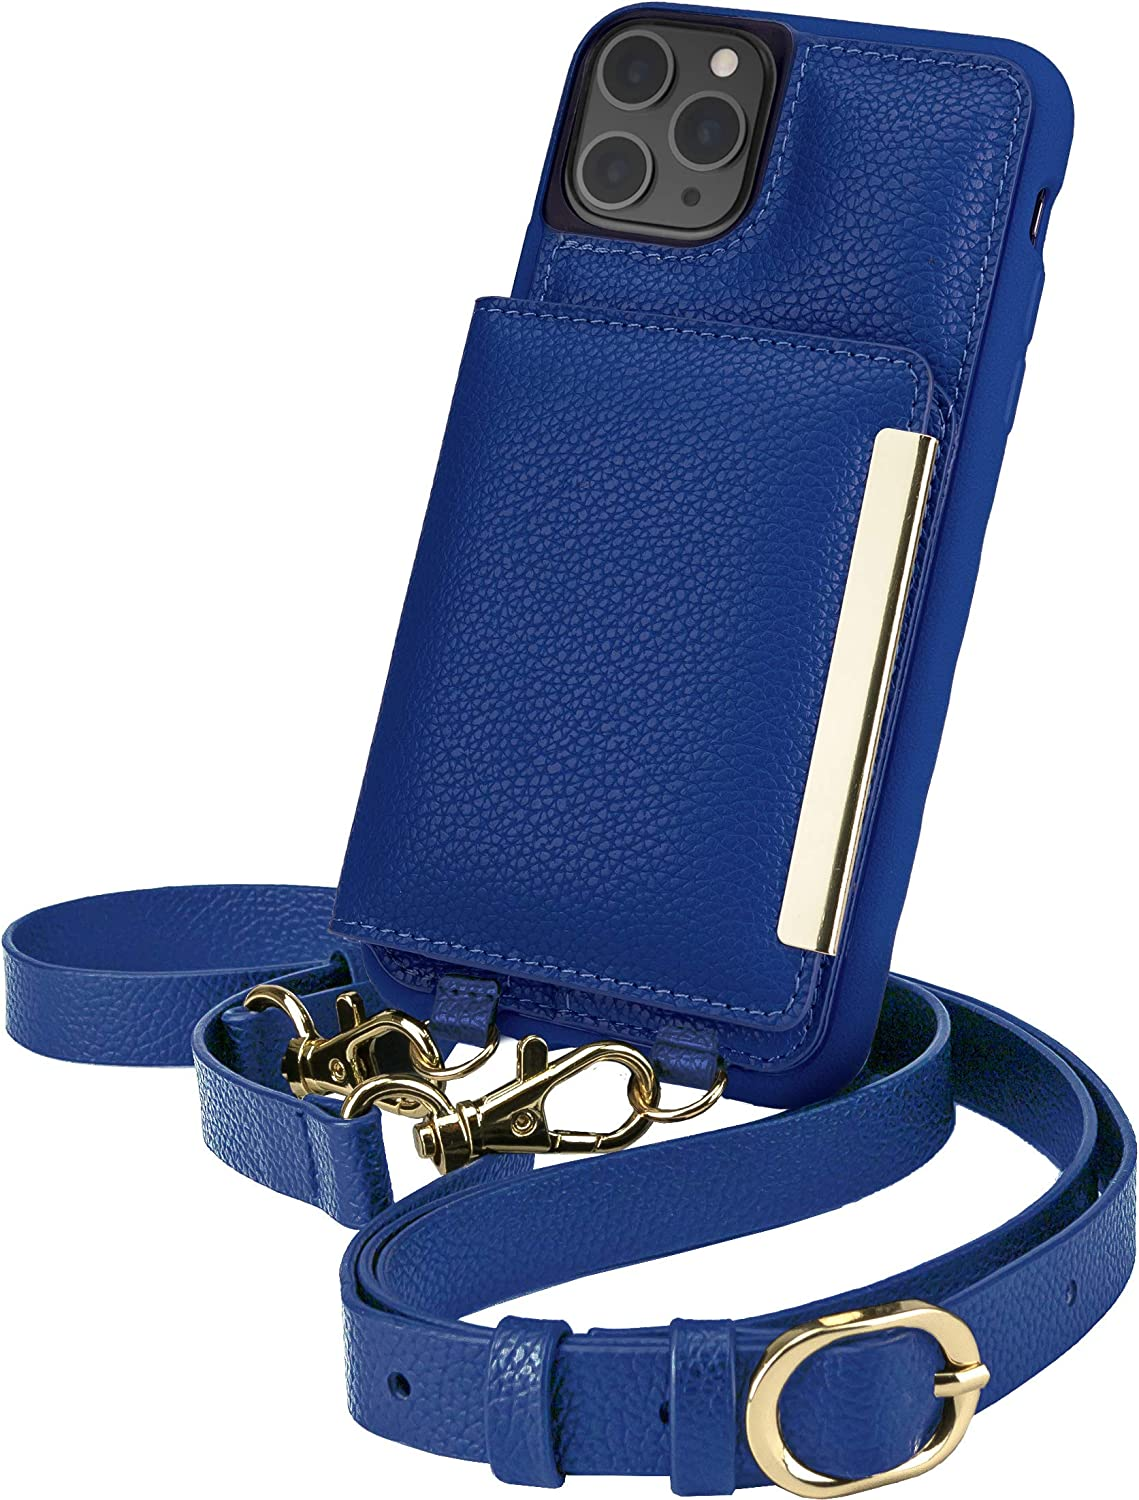 Smartish iPhone 11 Pro Max Crossbody Case - Dancing Queen [Purse/Clutch with Detachable Strap & Card Holder] - Bath Bomb Blue